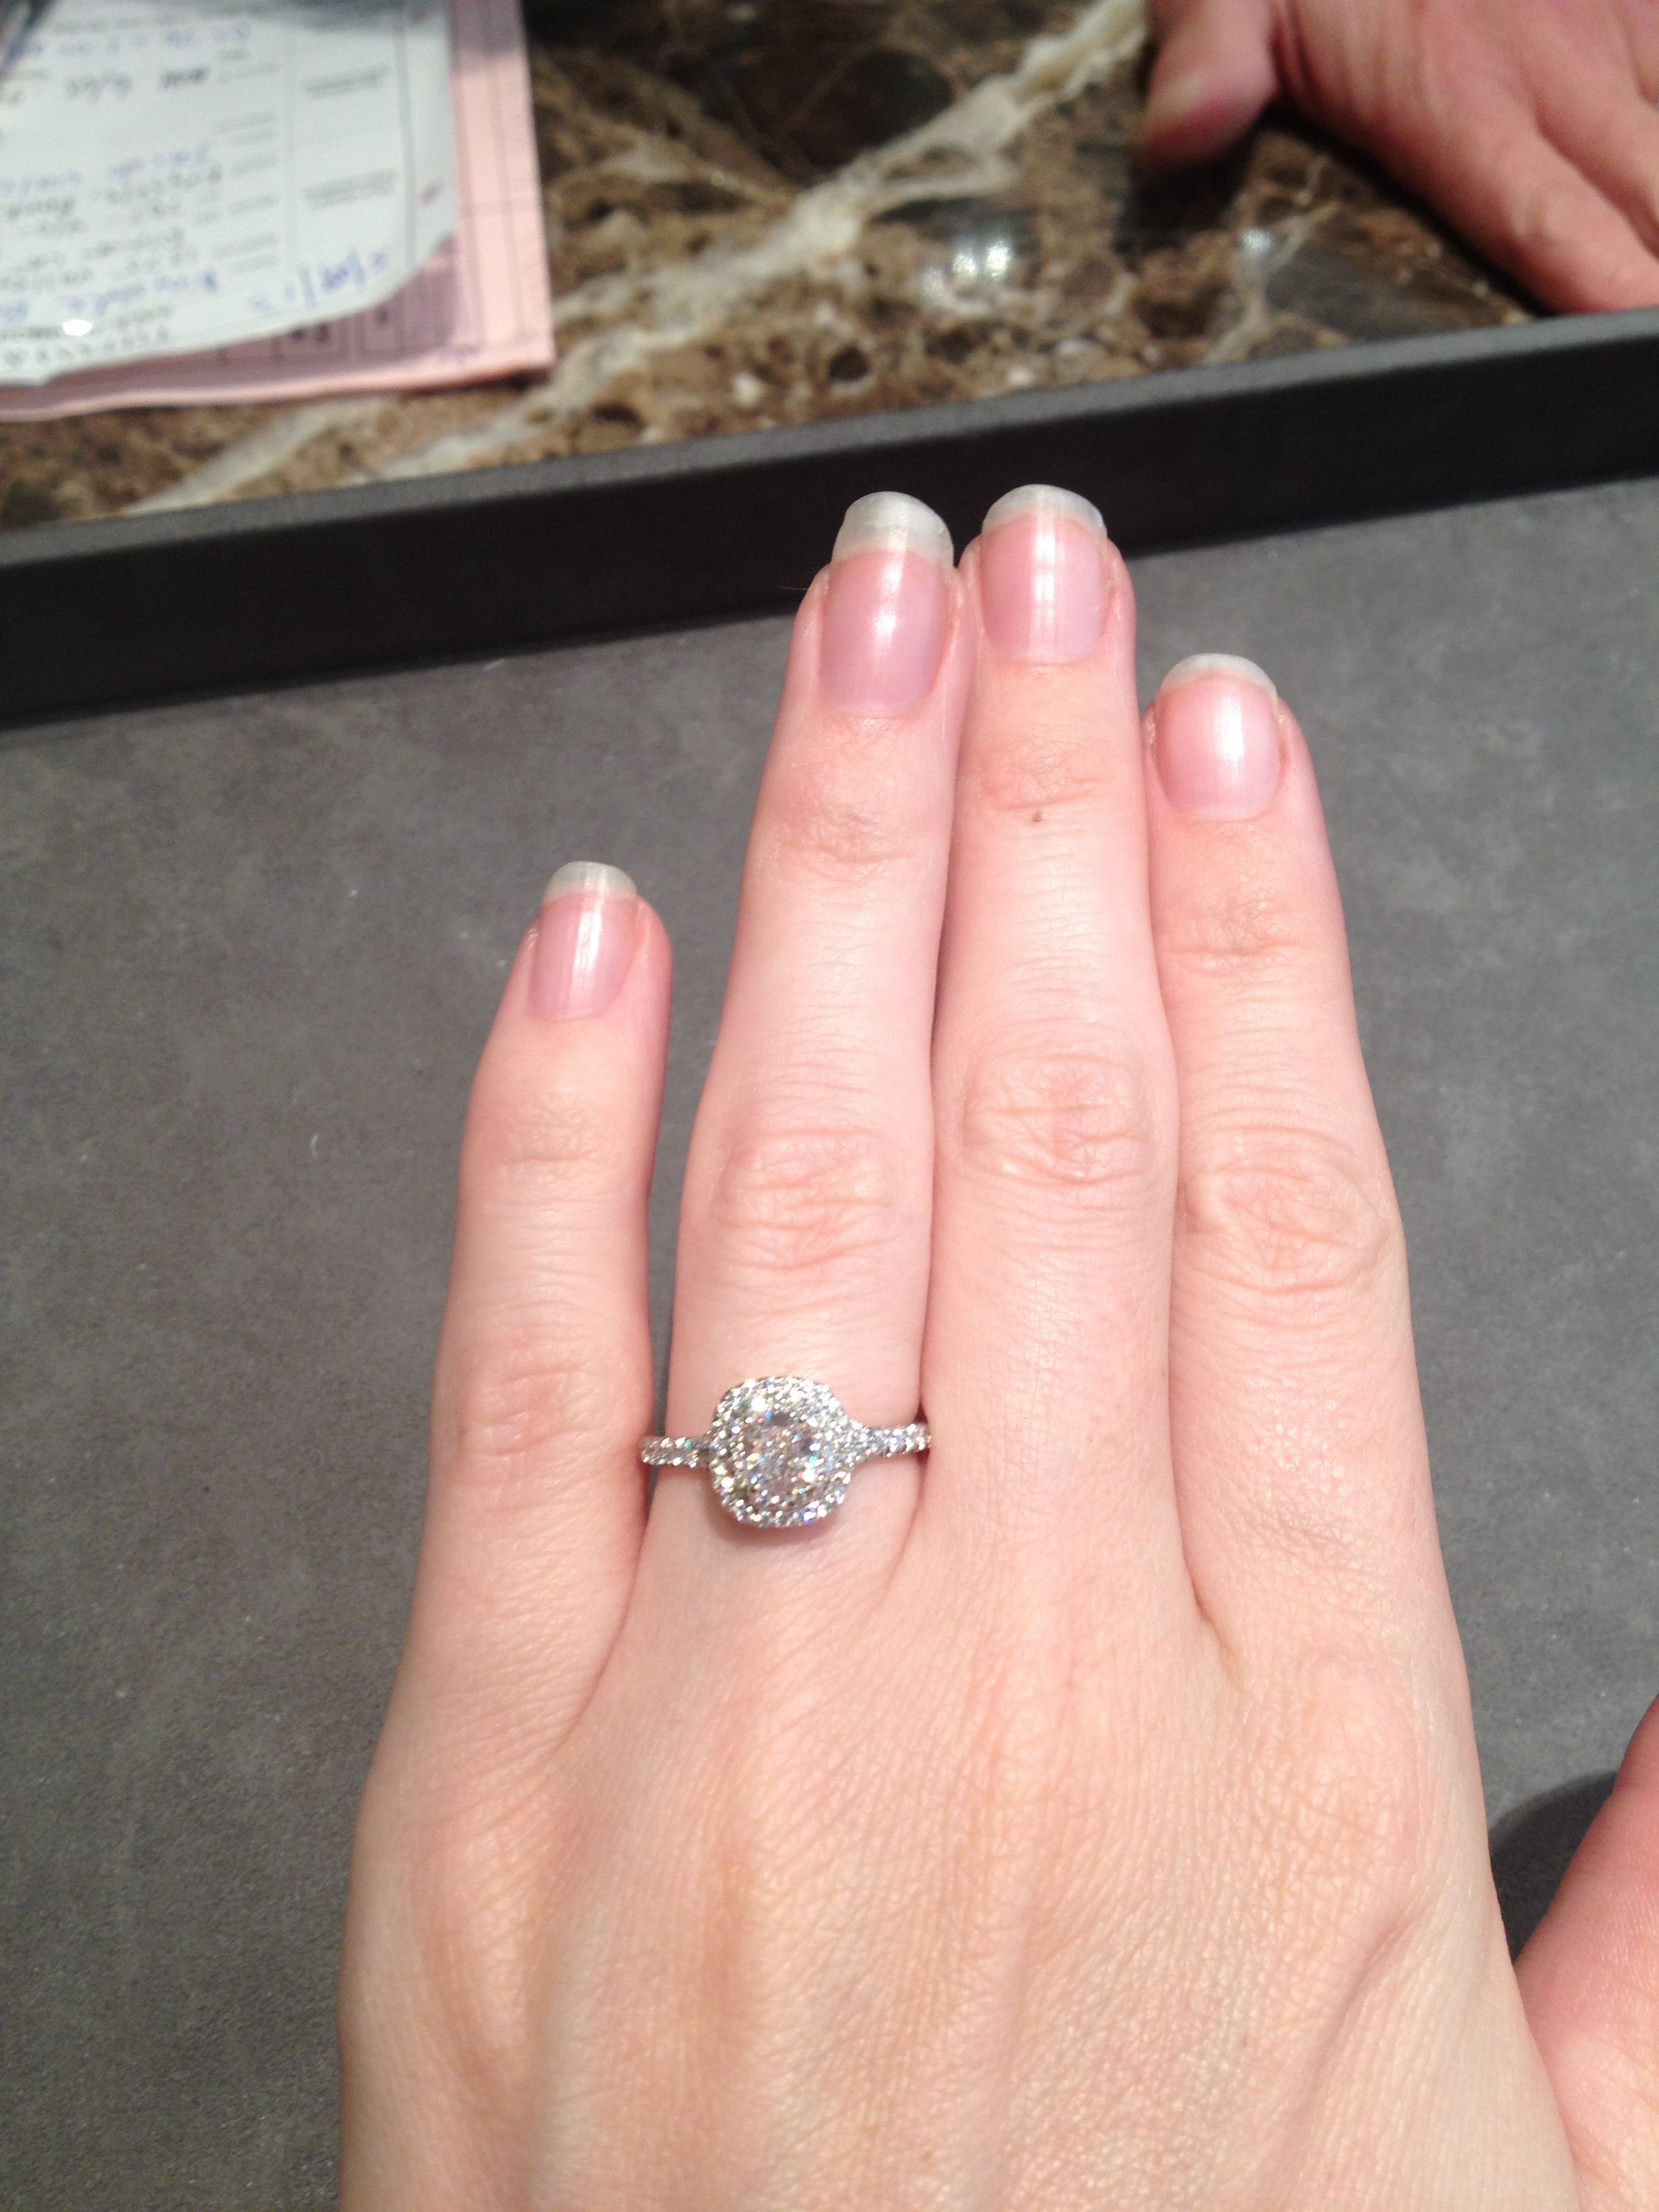 Tiffany Soleste. .53 carat E/VS1 Plantinum | WEDDING | Pinterest ...